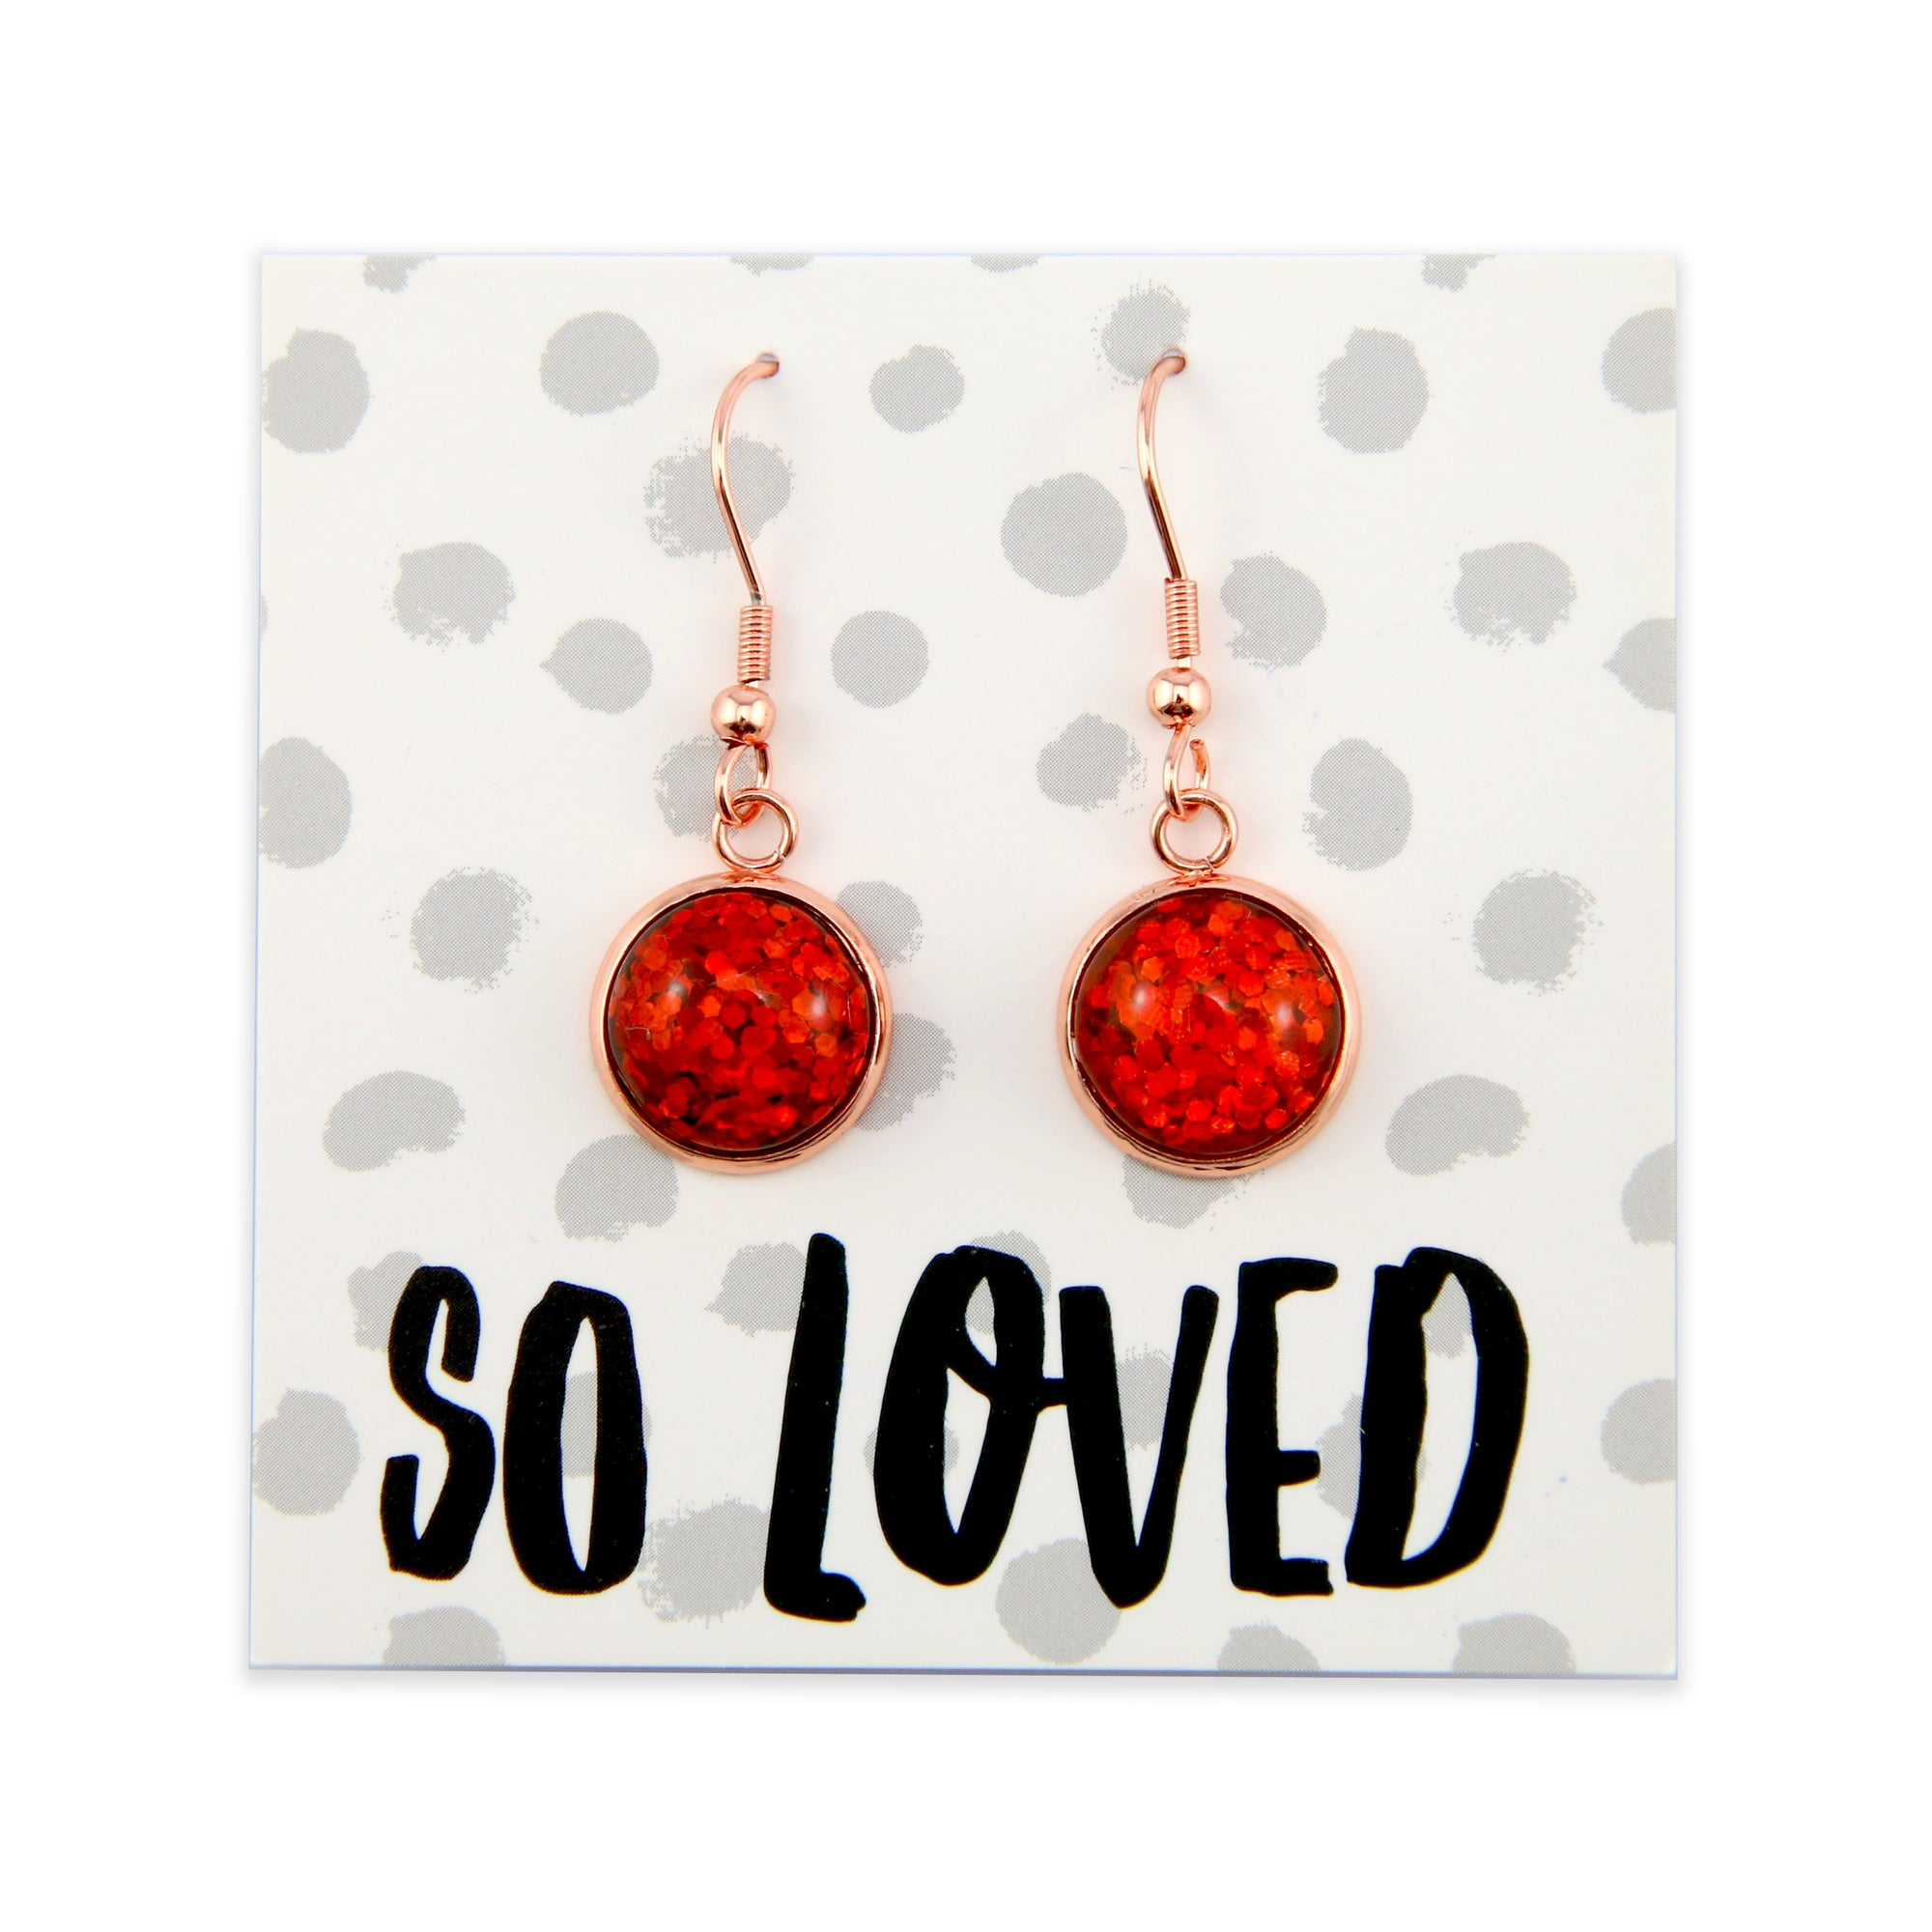 SPARKLEFEST Dangles - So Loved - Stainless Steel Rose Gold Earrings - Red Glitter (8409)